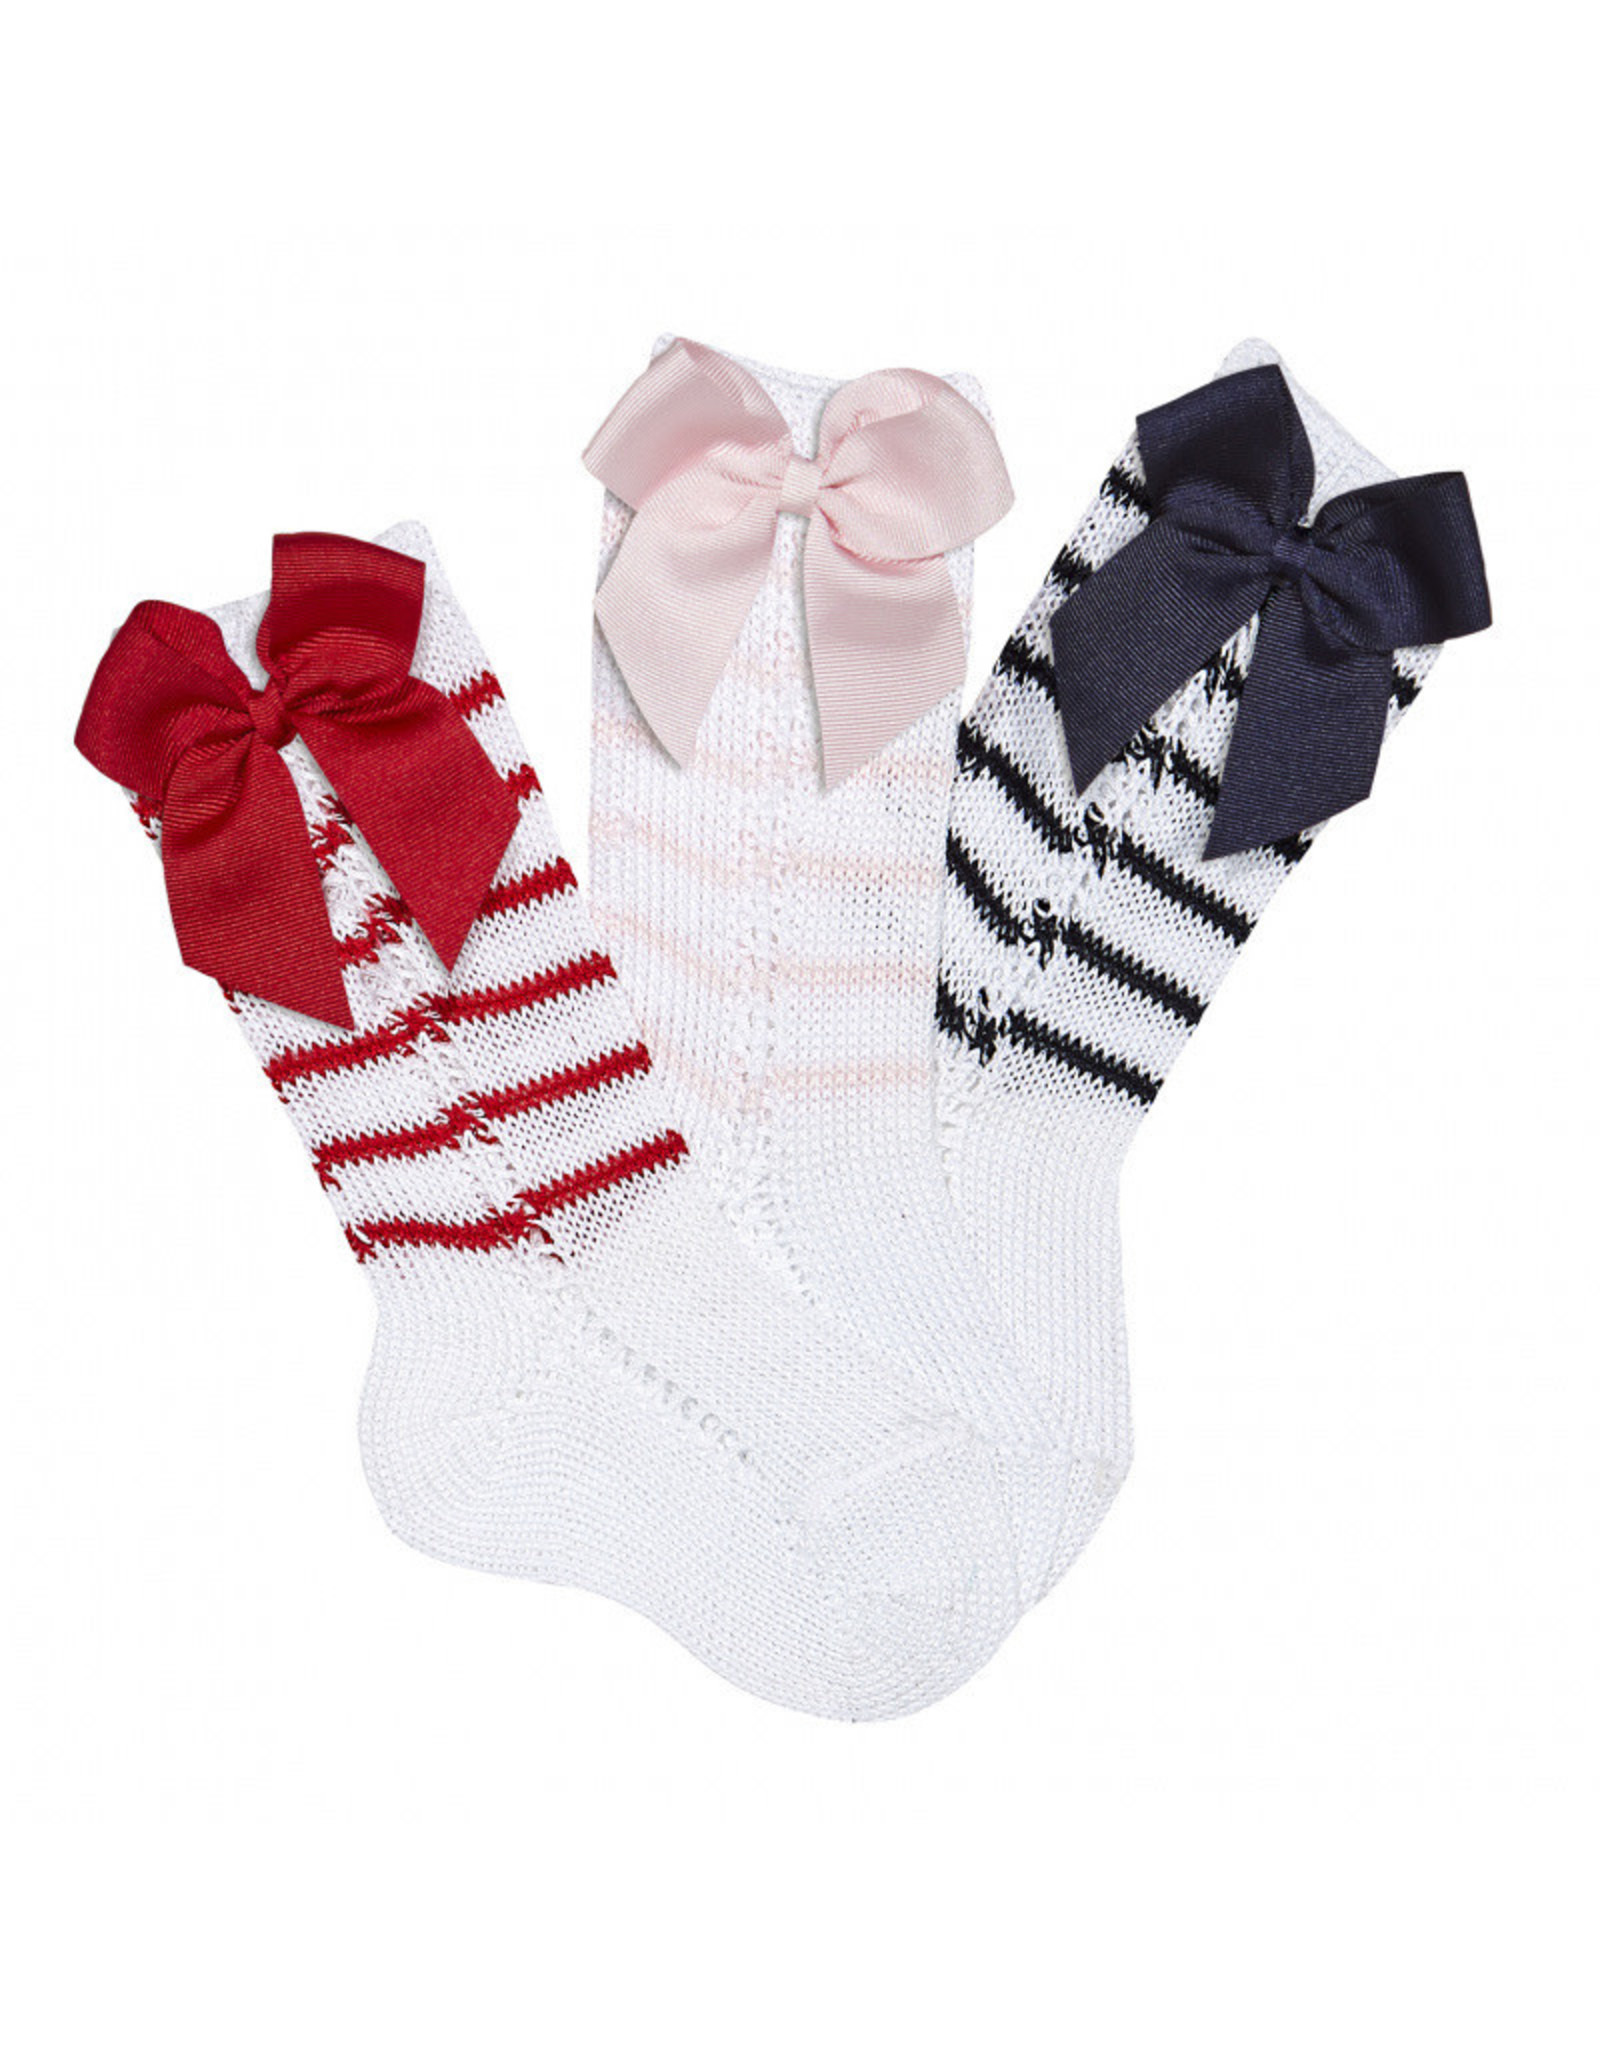 CONDOR Side Openwork Socks with Bow